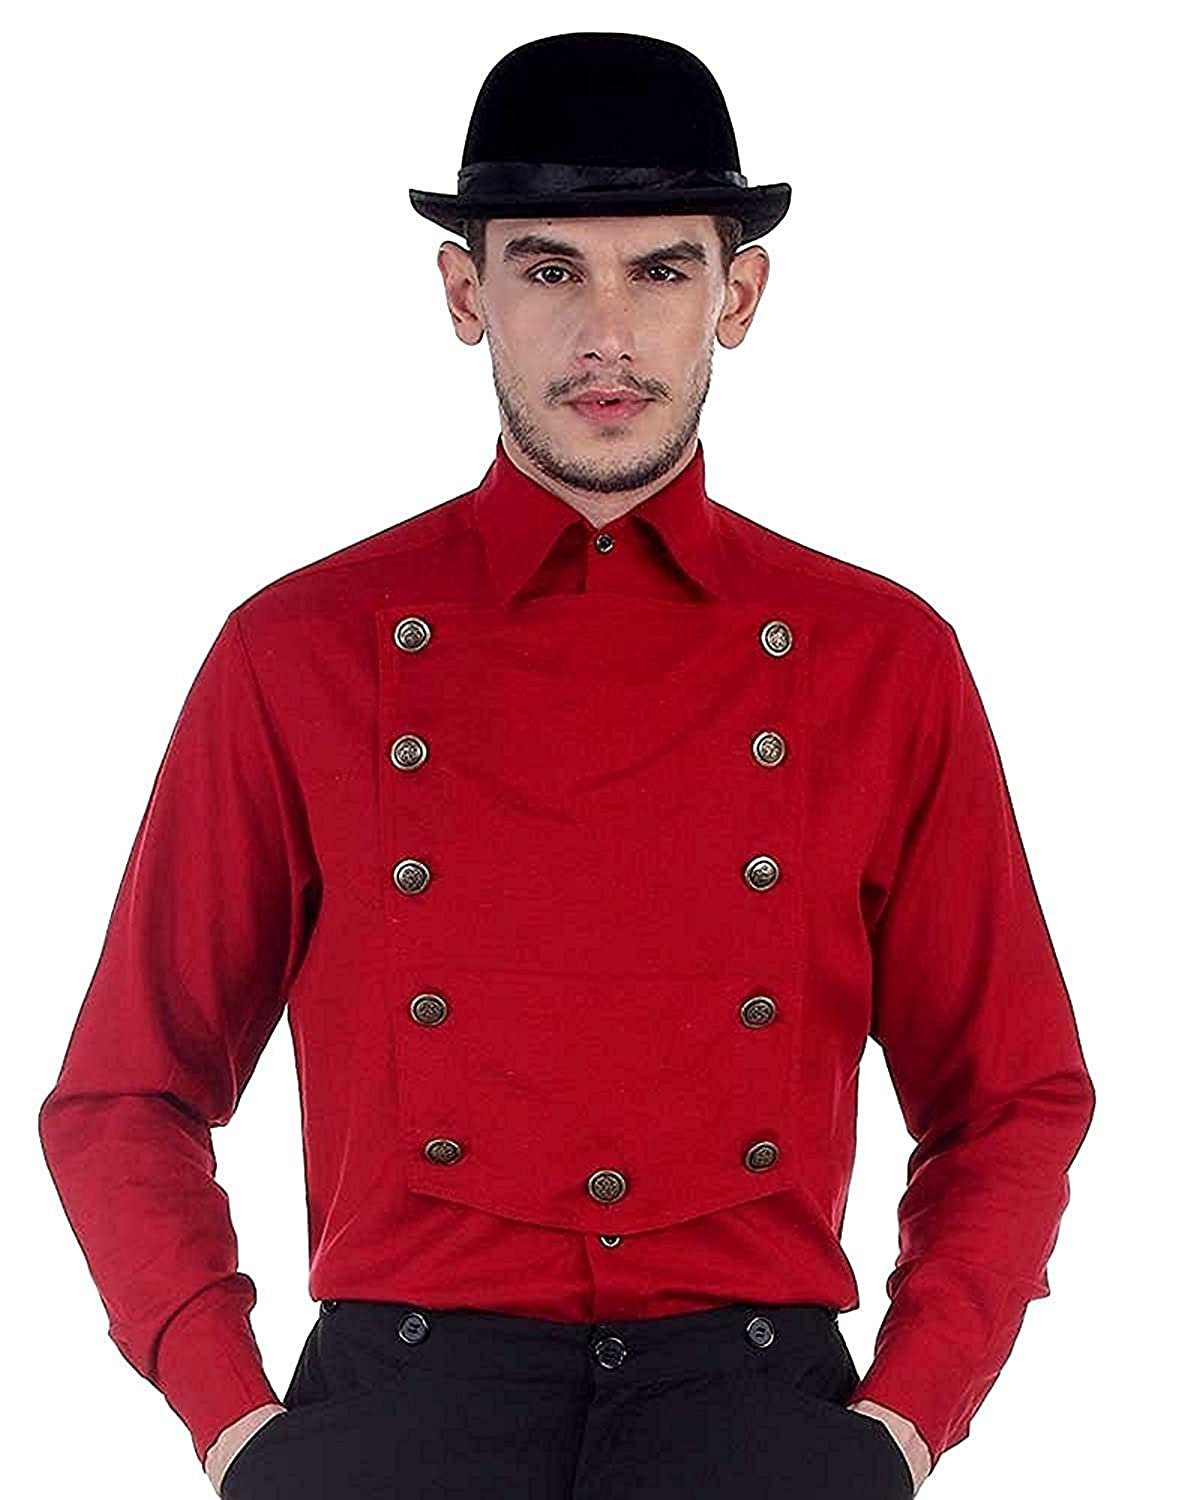 ThePirateDressing Steampunk Victorian Cosplay Costume Mens Linen Airship Shirt C1290 C1290-Parent